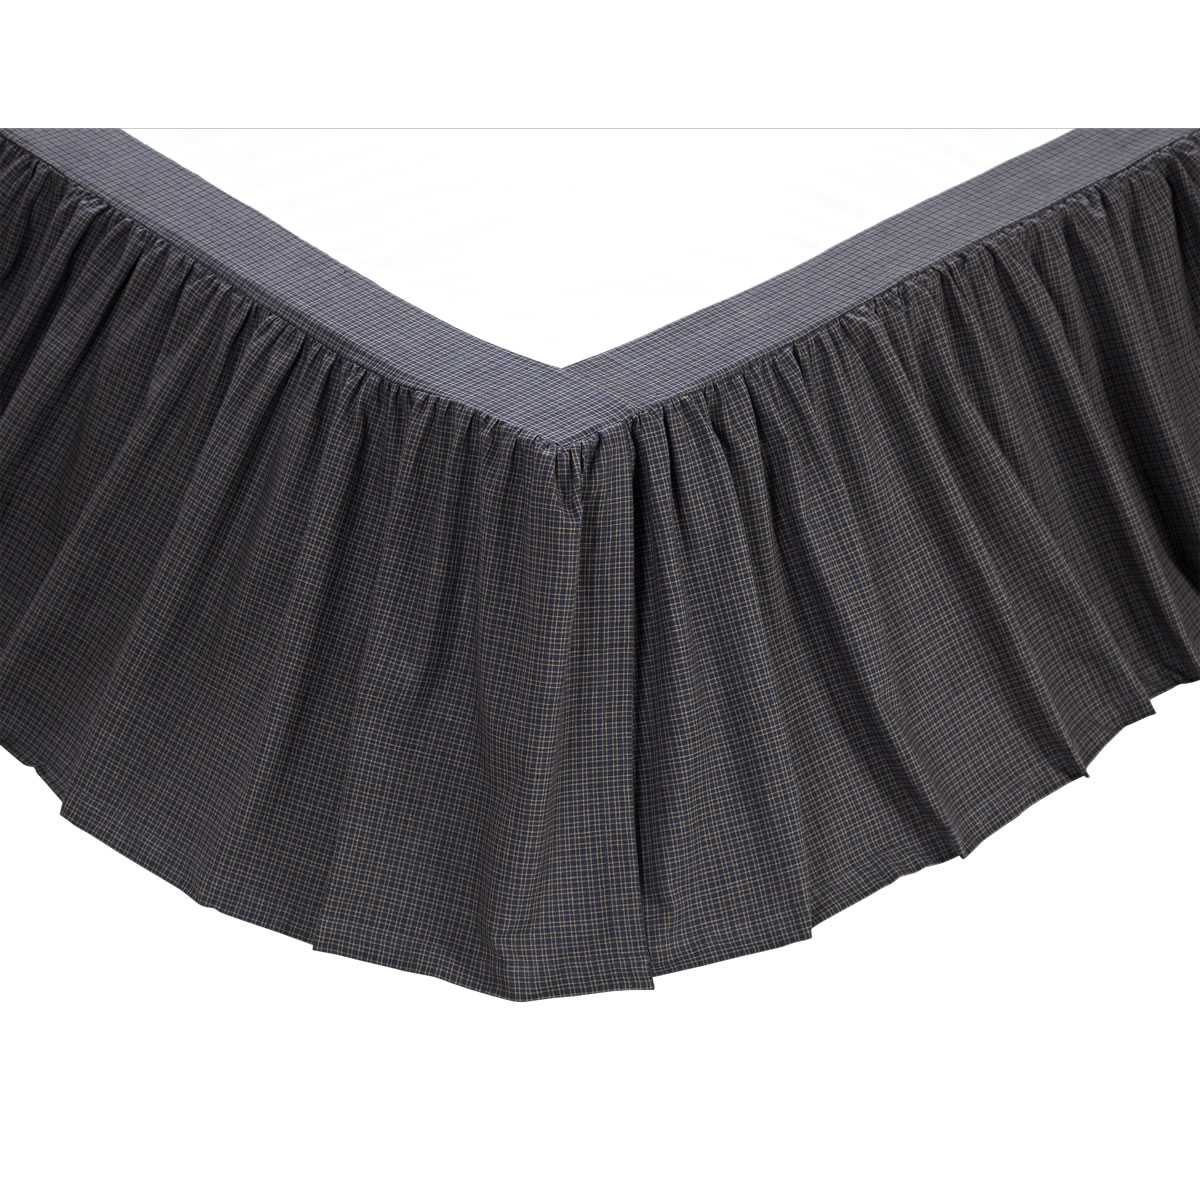 Arlington Bed Skirt - All Sizes Available - Vhc Brands